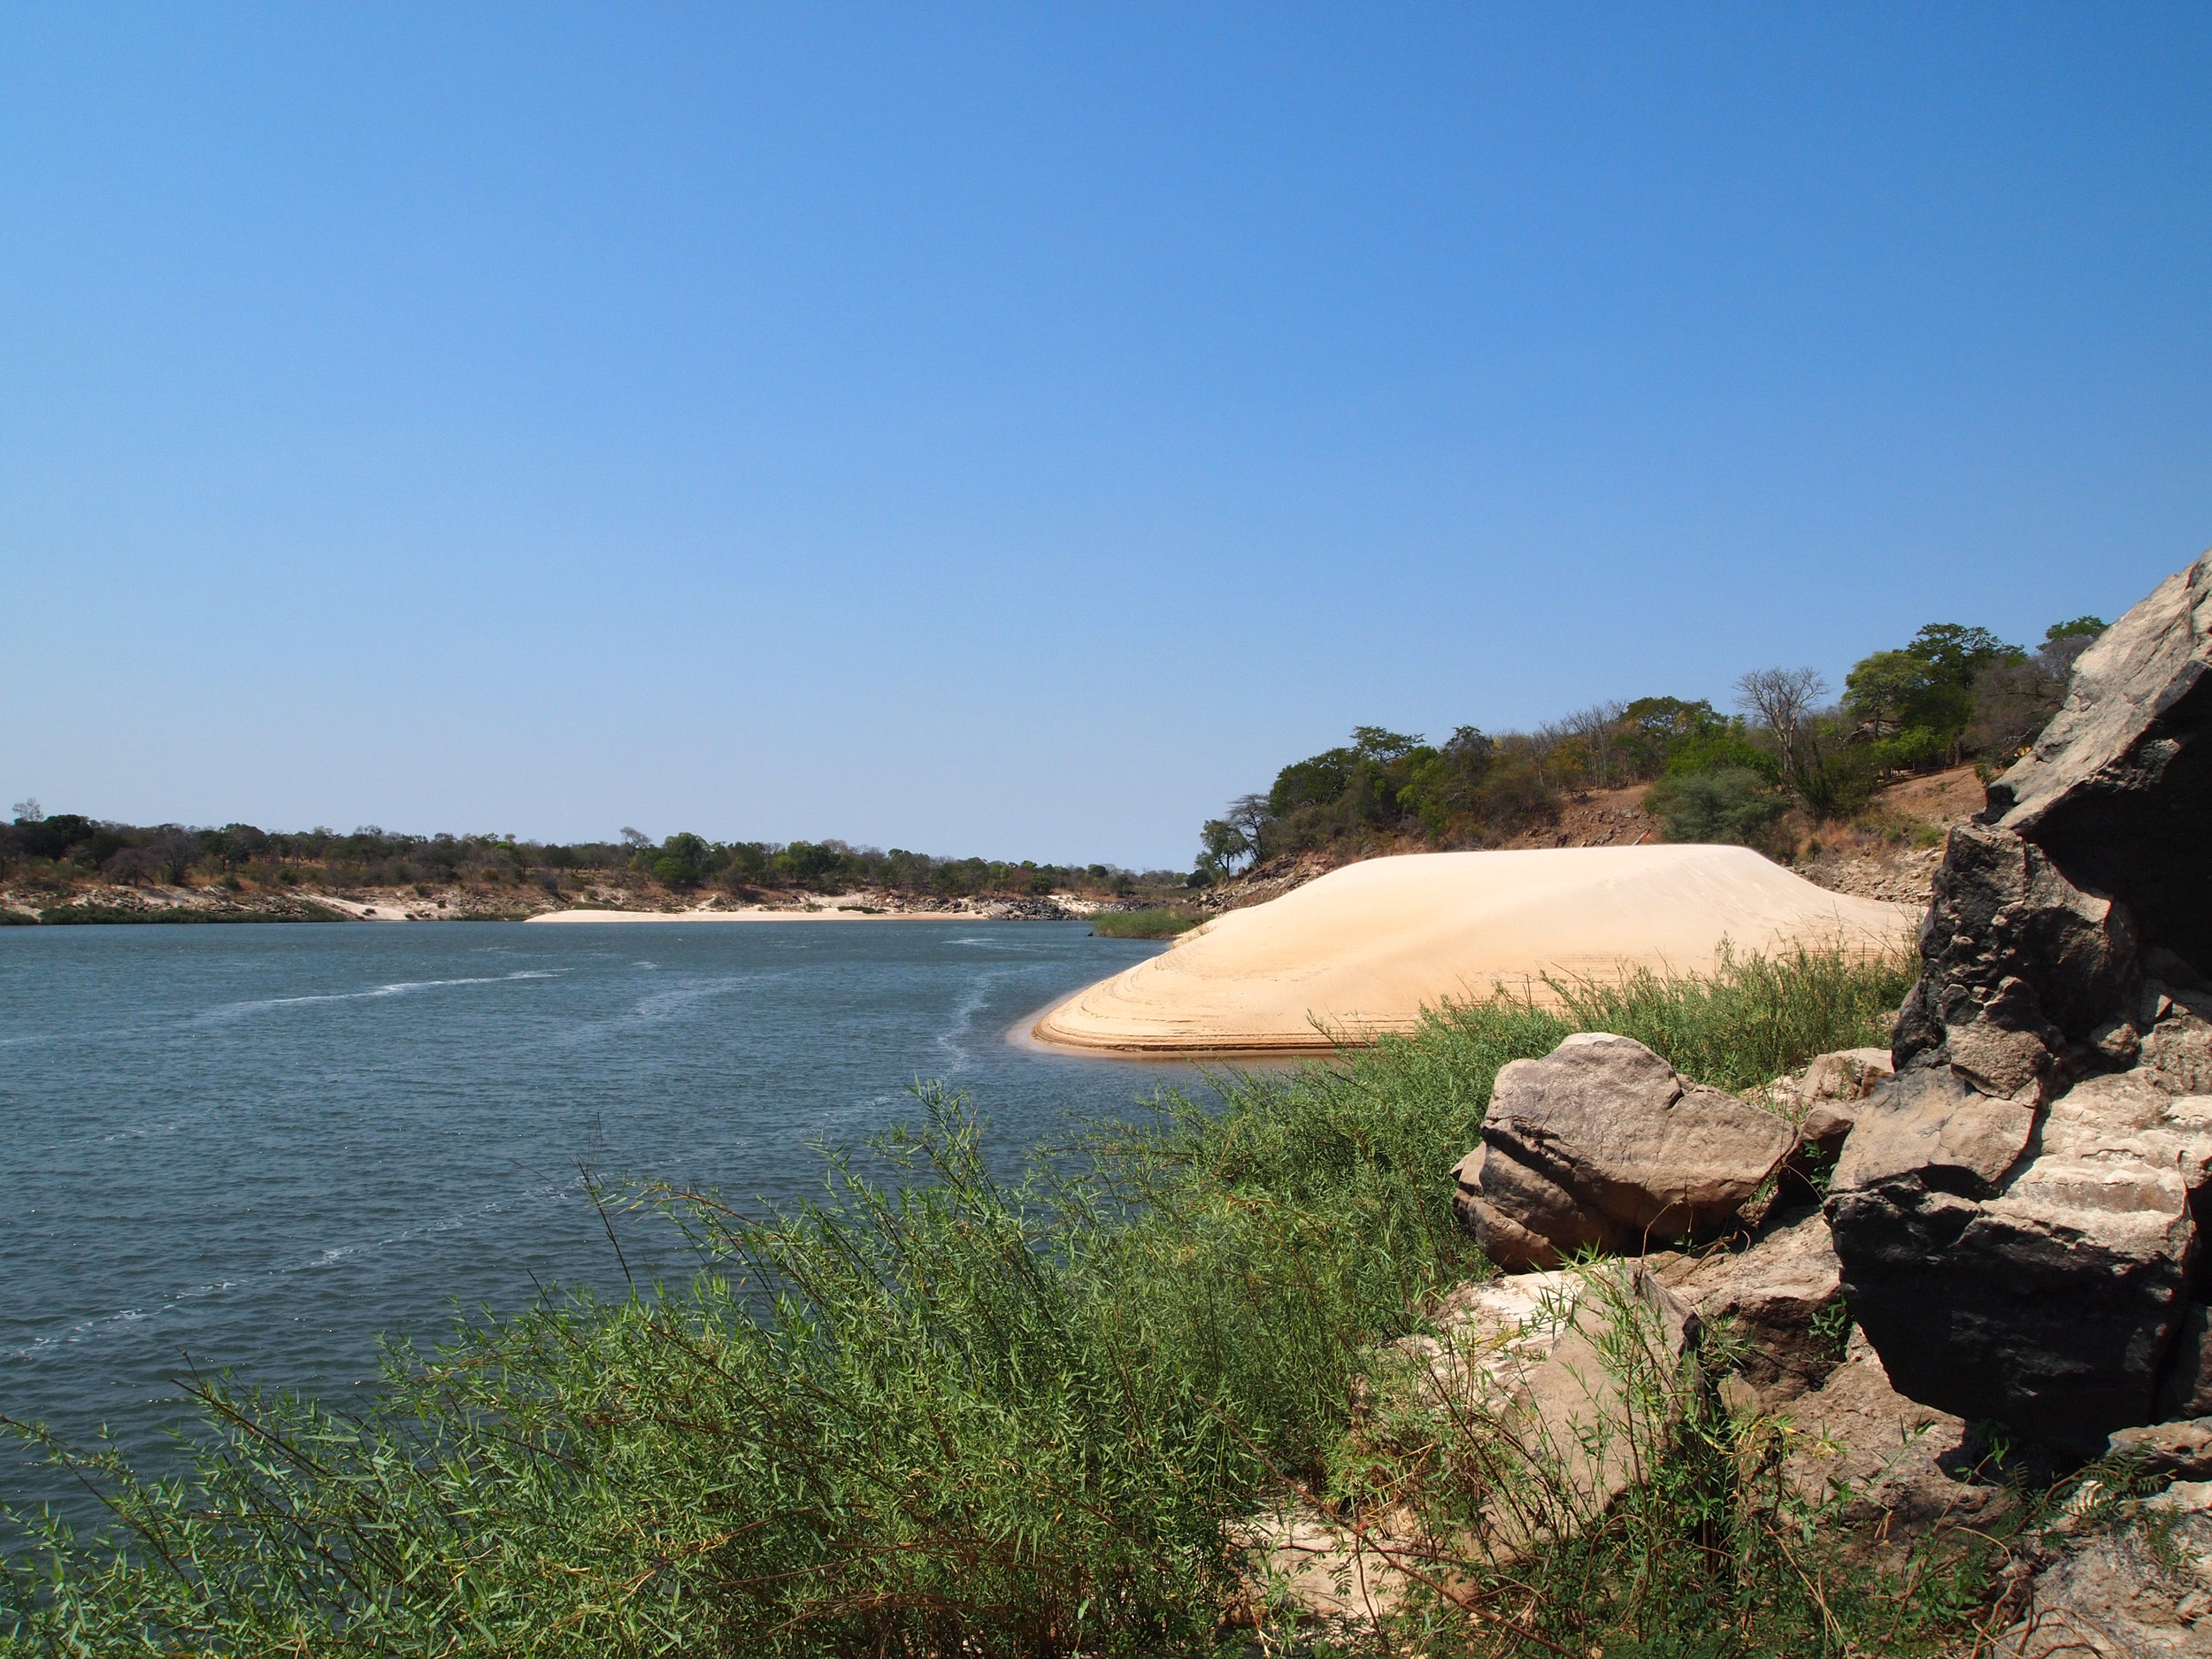 Zambezi river from Camp